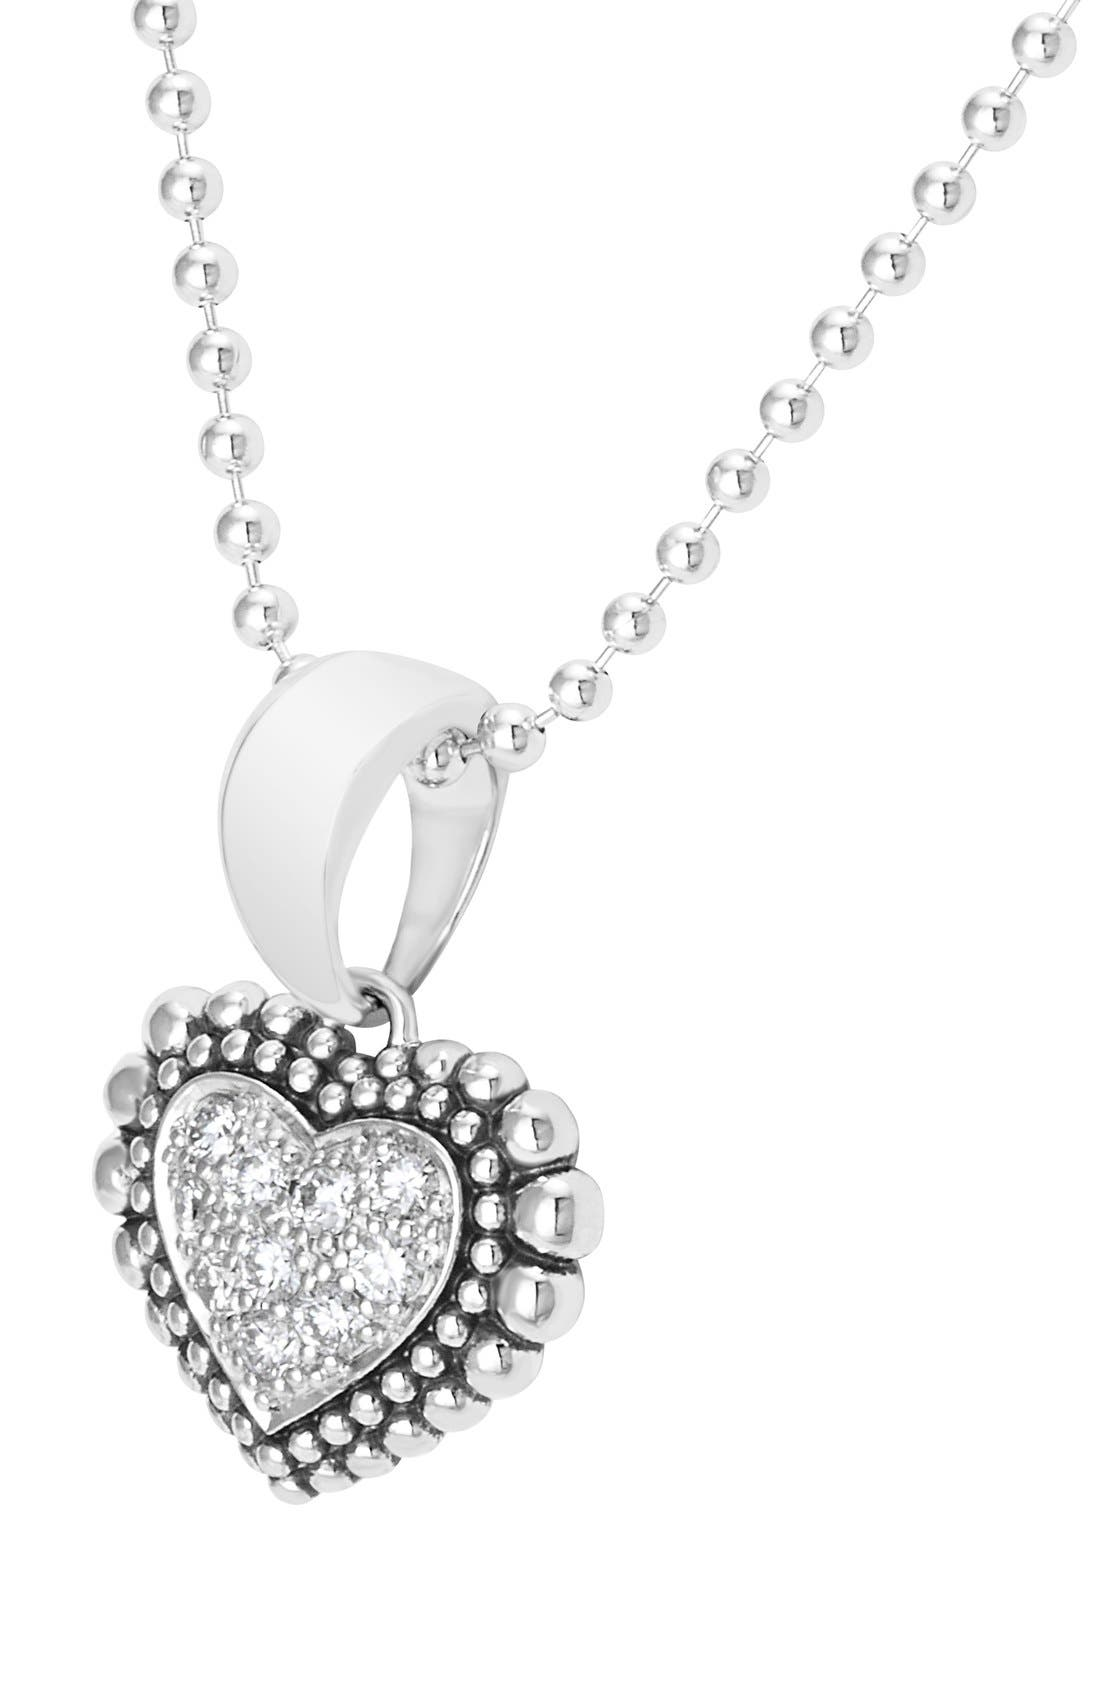 Diamond Heart Pendant Necklace,                             Alternate thumbnail 2, color,                             Silver